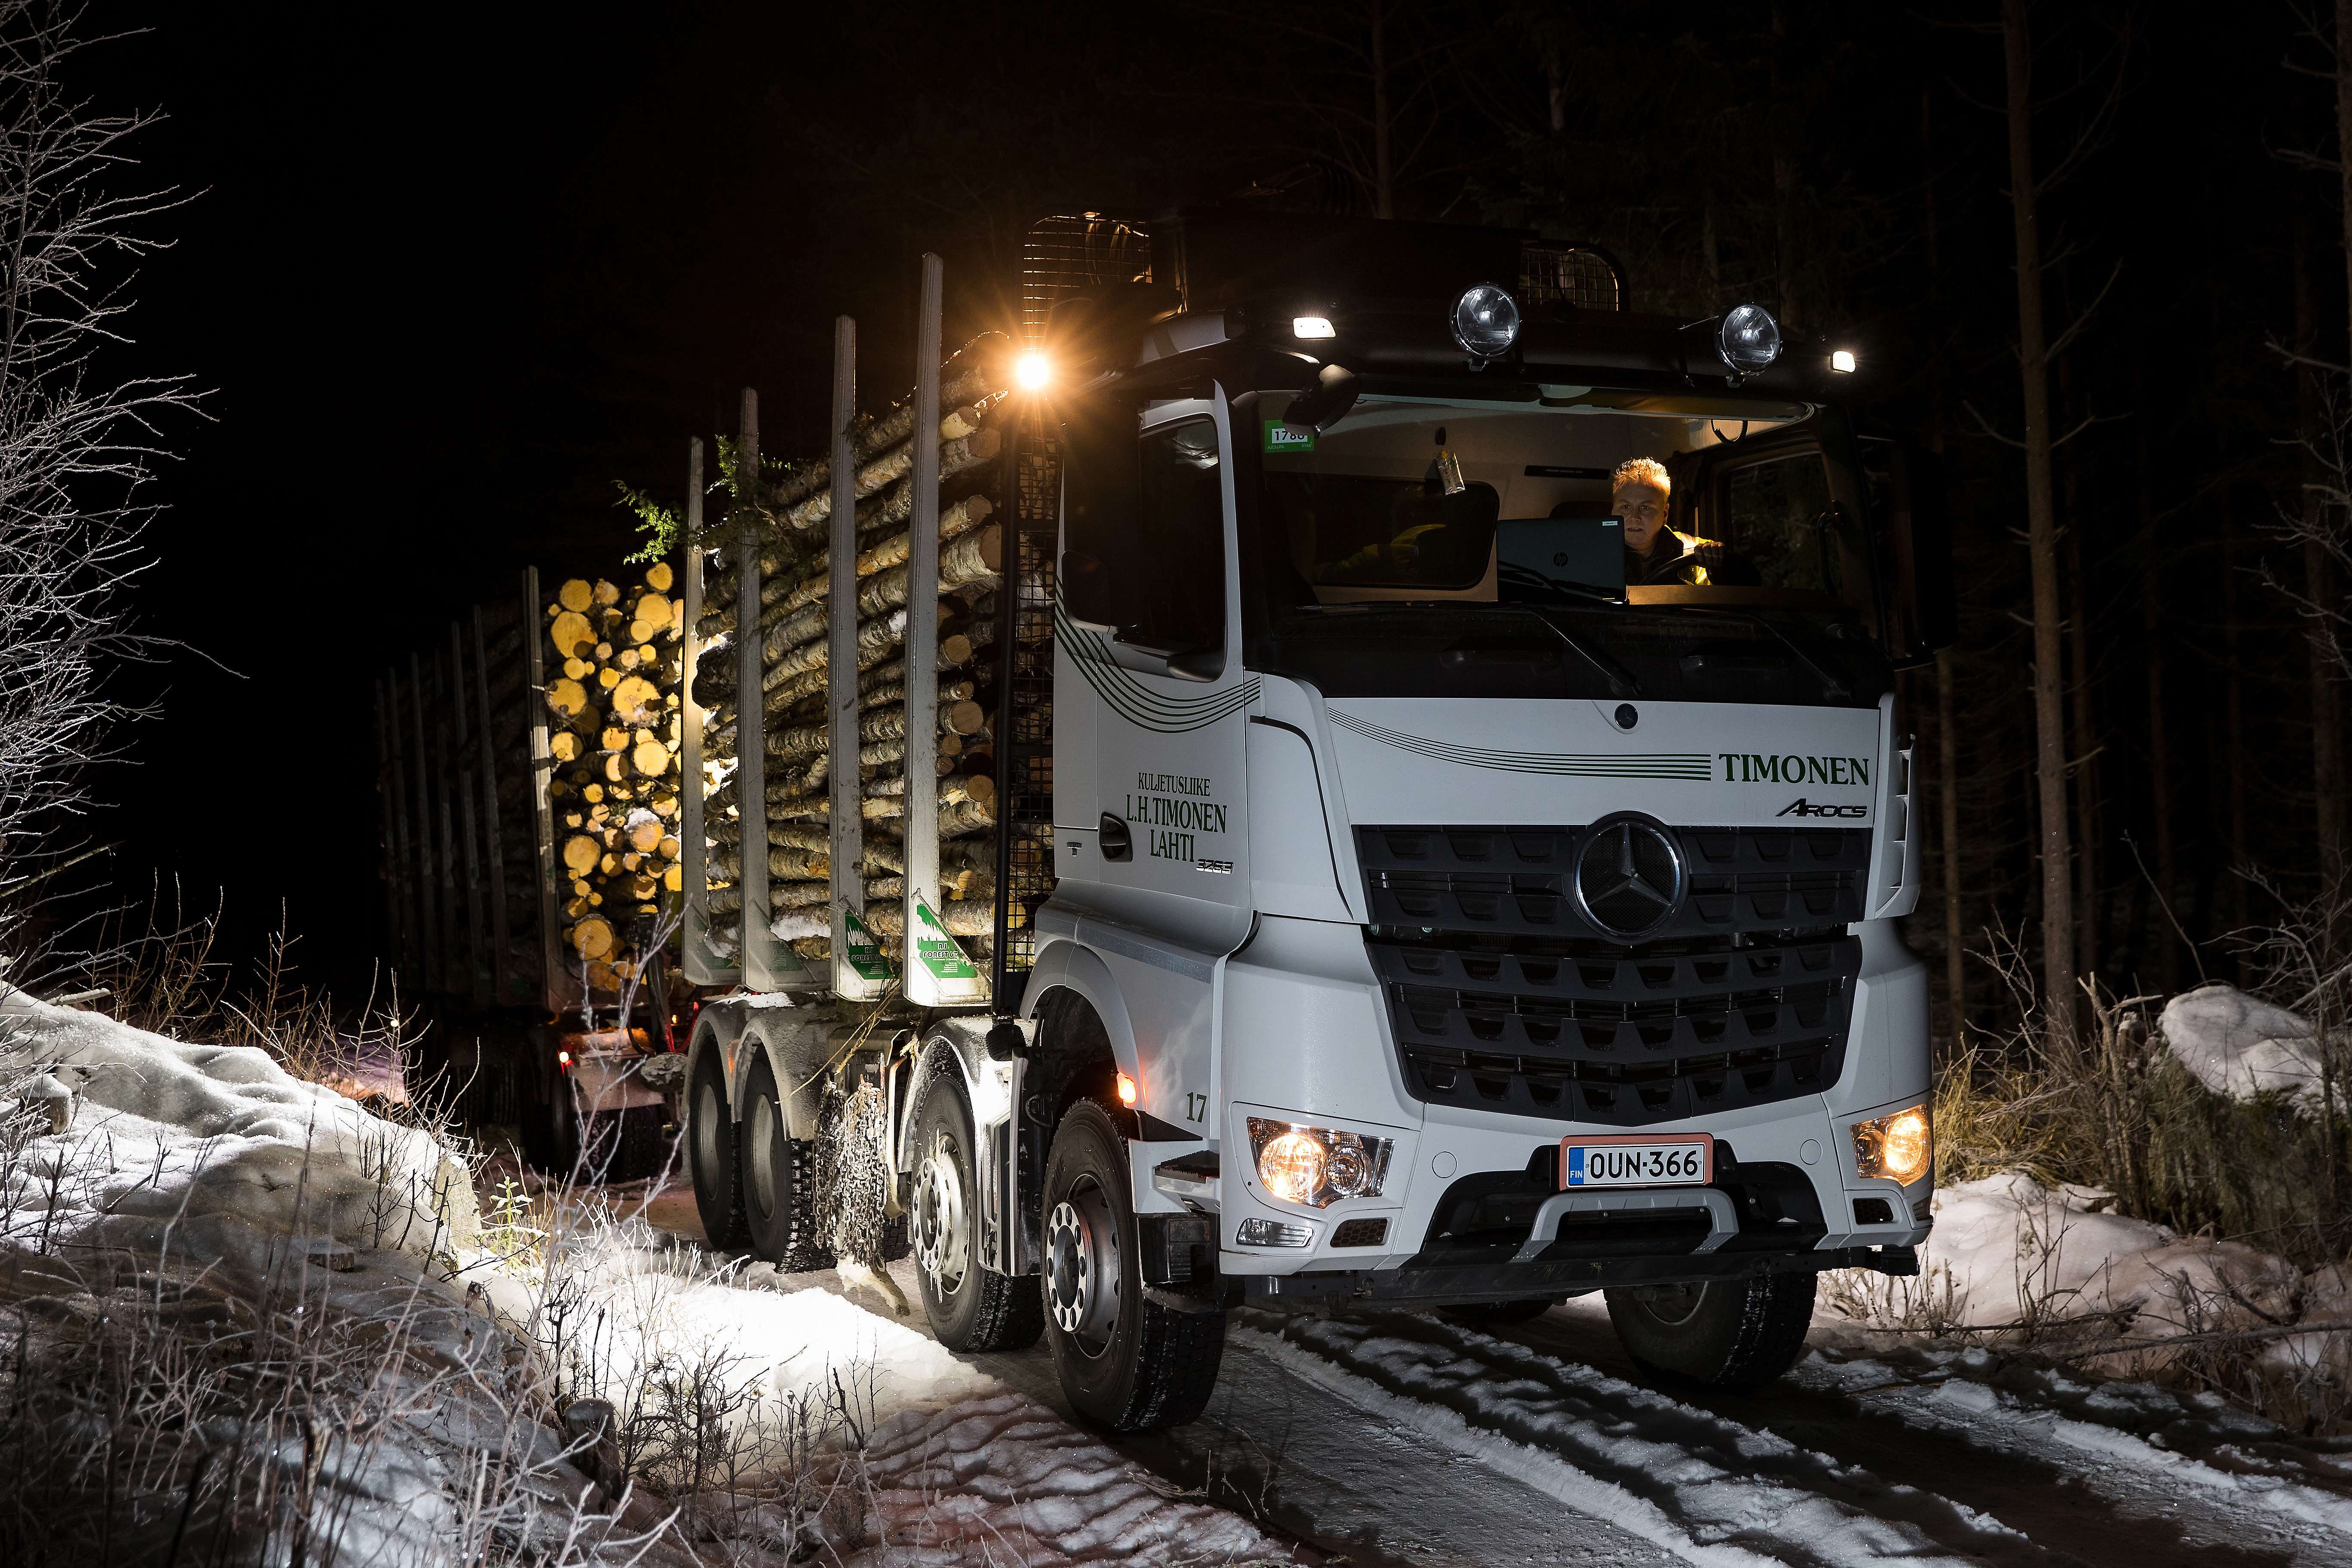 Mercedes-Benz Arocs as a 76-tonne lumber transport on Finland's icy roads